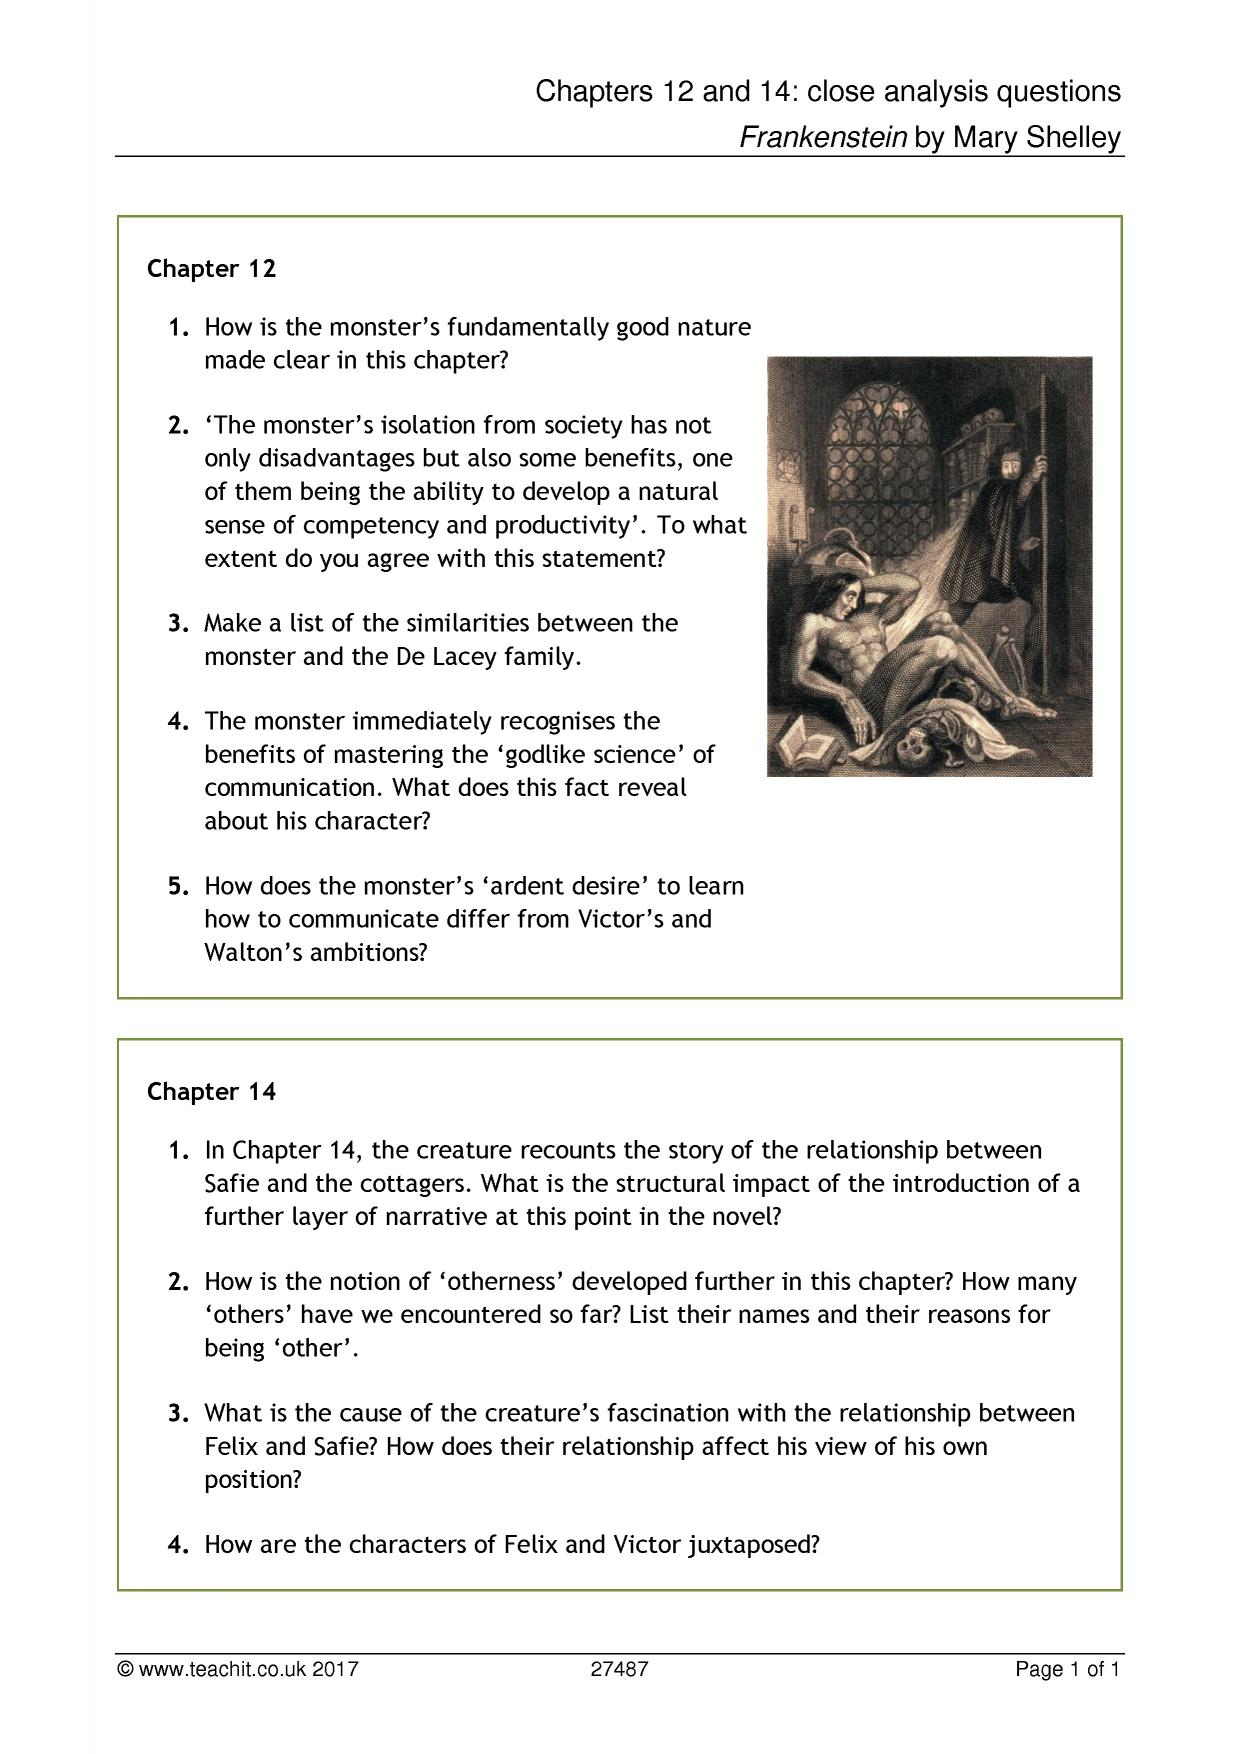 a literary analysis of morality in frankenstein by mary shelley Frankenstein study guide contains a biography of mary shelley, literature essays, a complete e-text, quiz questions, major themes, characters, and a full summary and analysis frankenstein study guide contains a biography of mary shelley, literature essays, a complete e-text, quiz questions, major themes, characters, and a full.